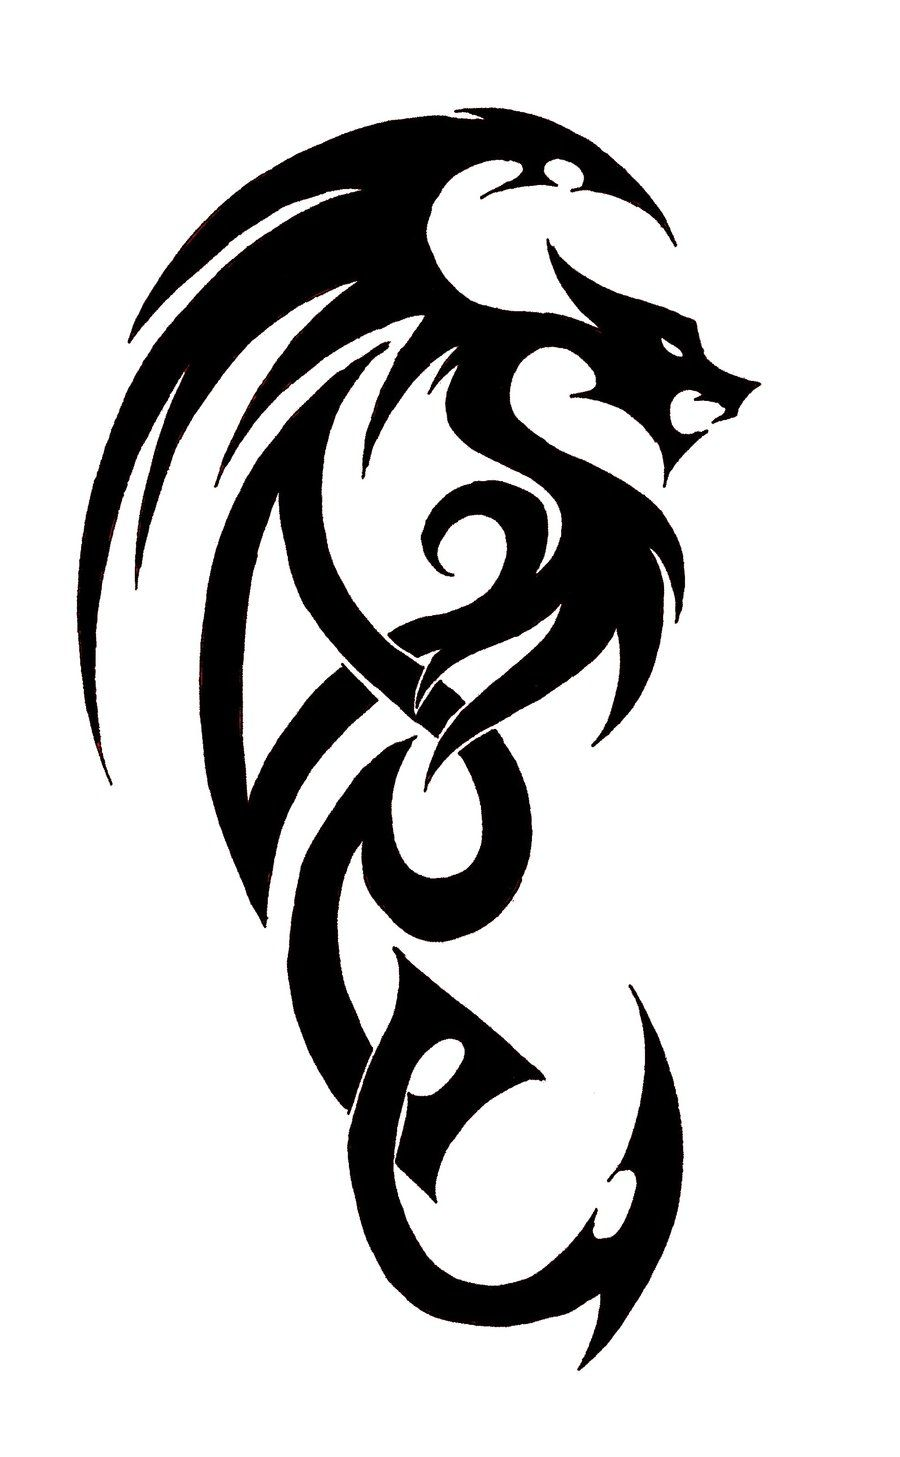 Tattoo Simple Dragon Dragon Tattoo Images Celtic Dragon Tattoos Dragon Tattoos For Men